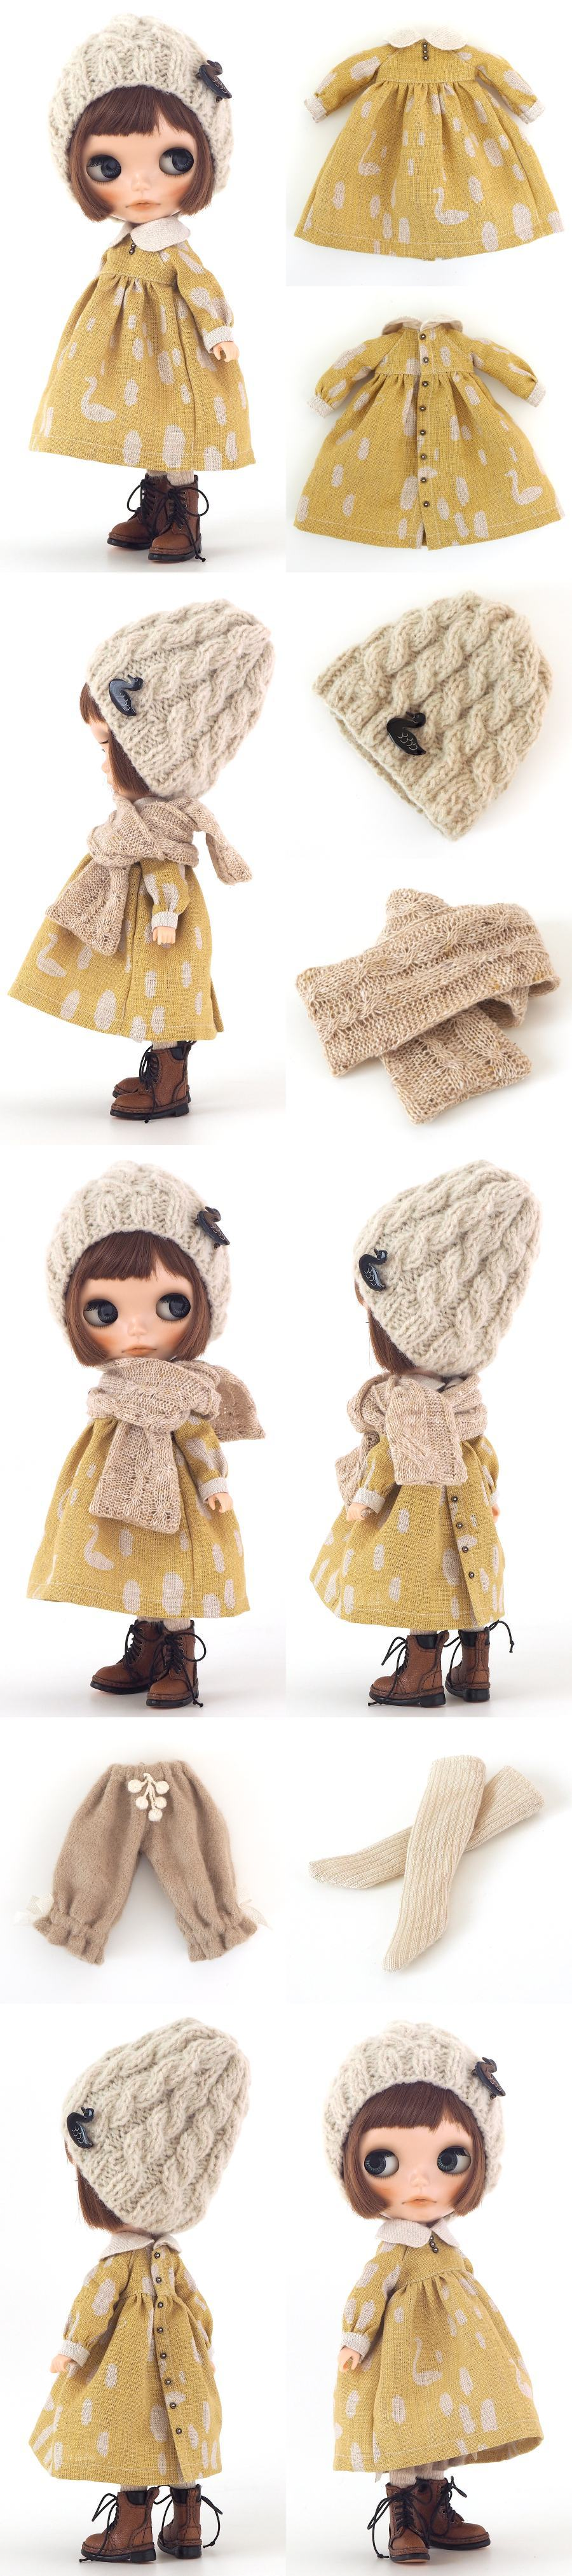 ** Blythe outfit ** Lucalily 559**_d0217189_11514637.jpg